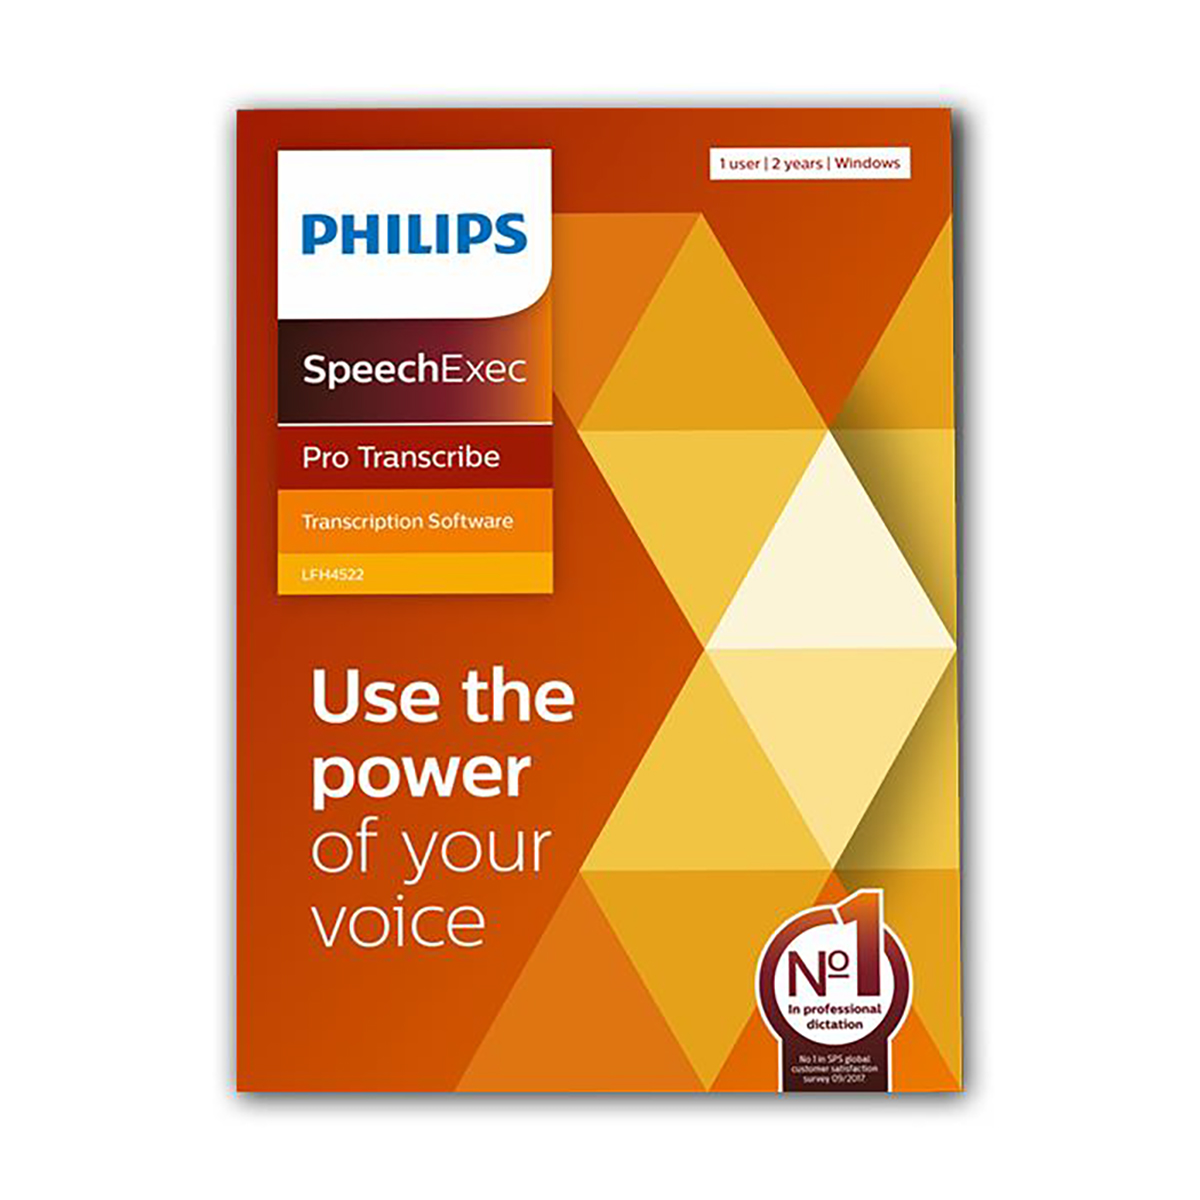 Philips LFH4522 SpeechExec 11 Pro Transcribe 2 Year Subscription Boxed